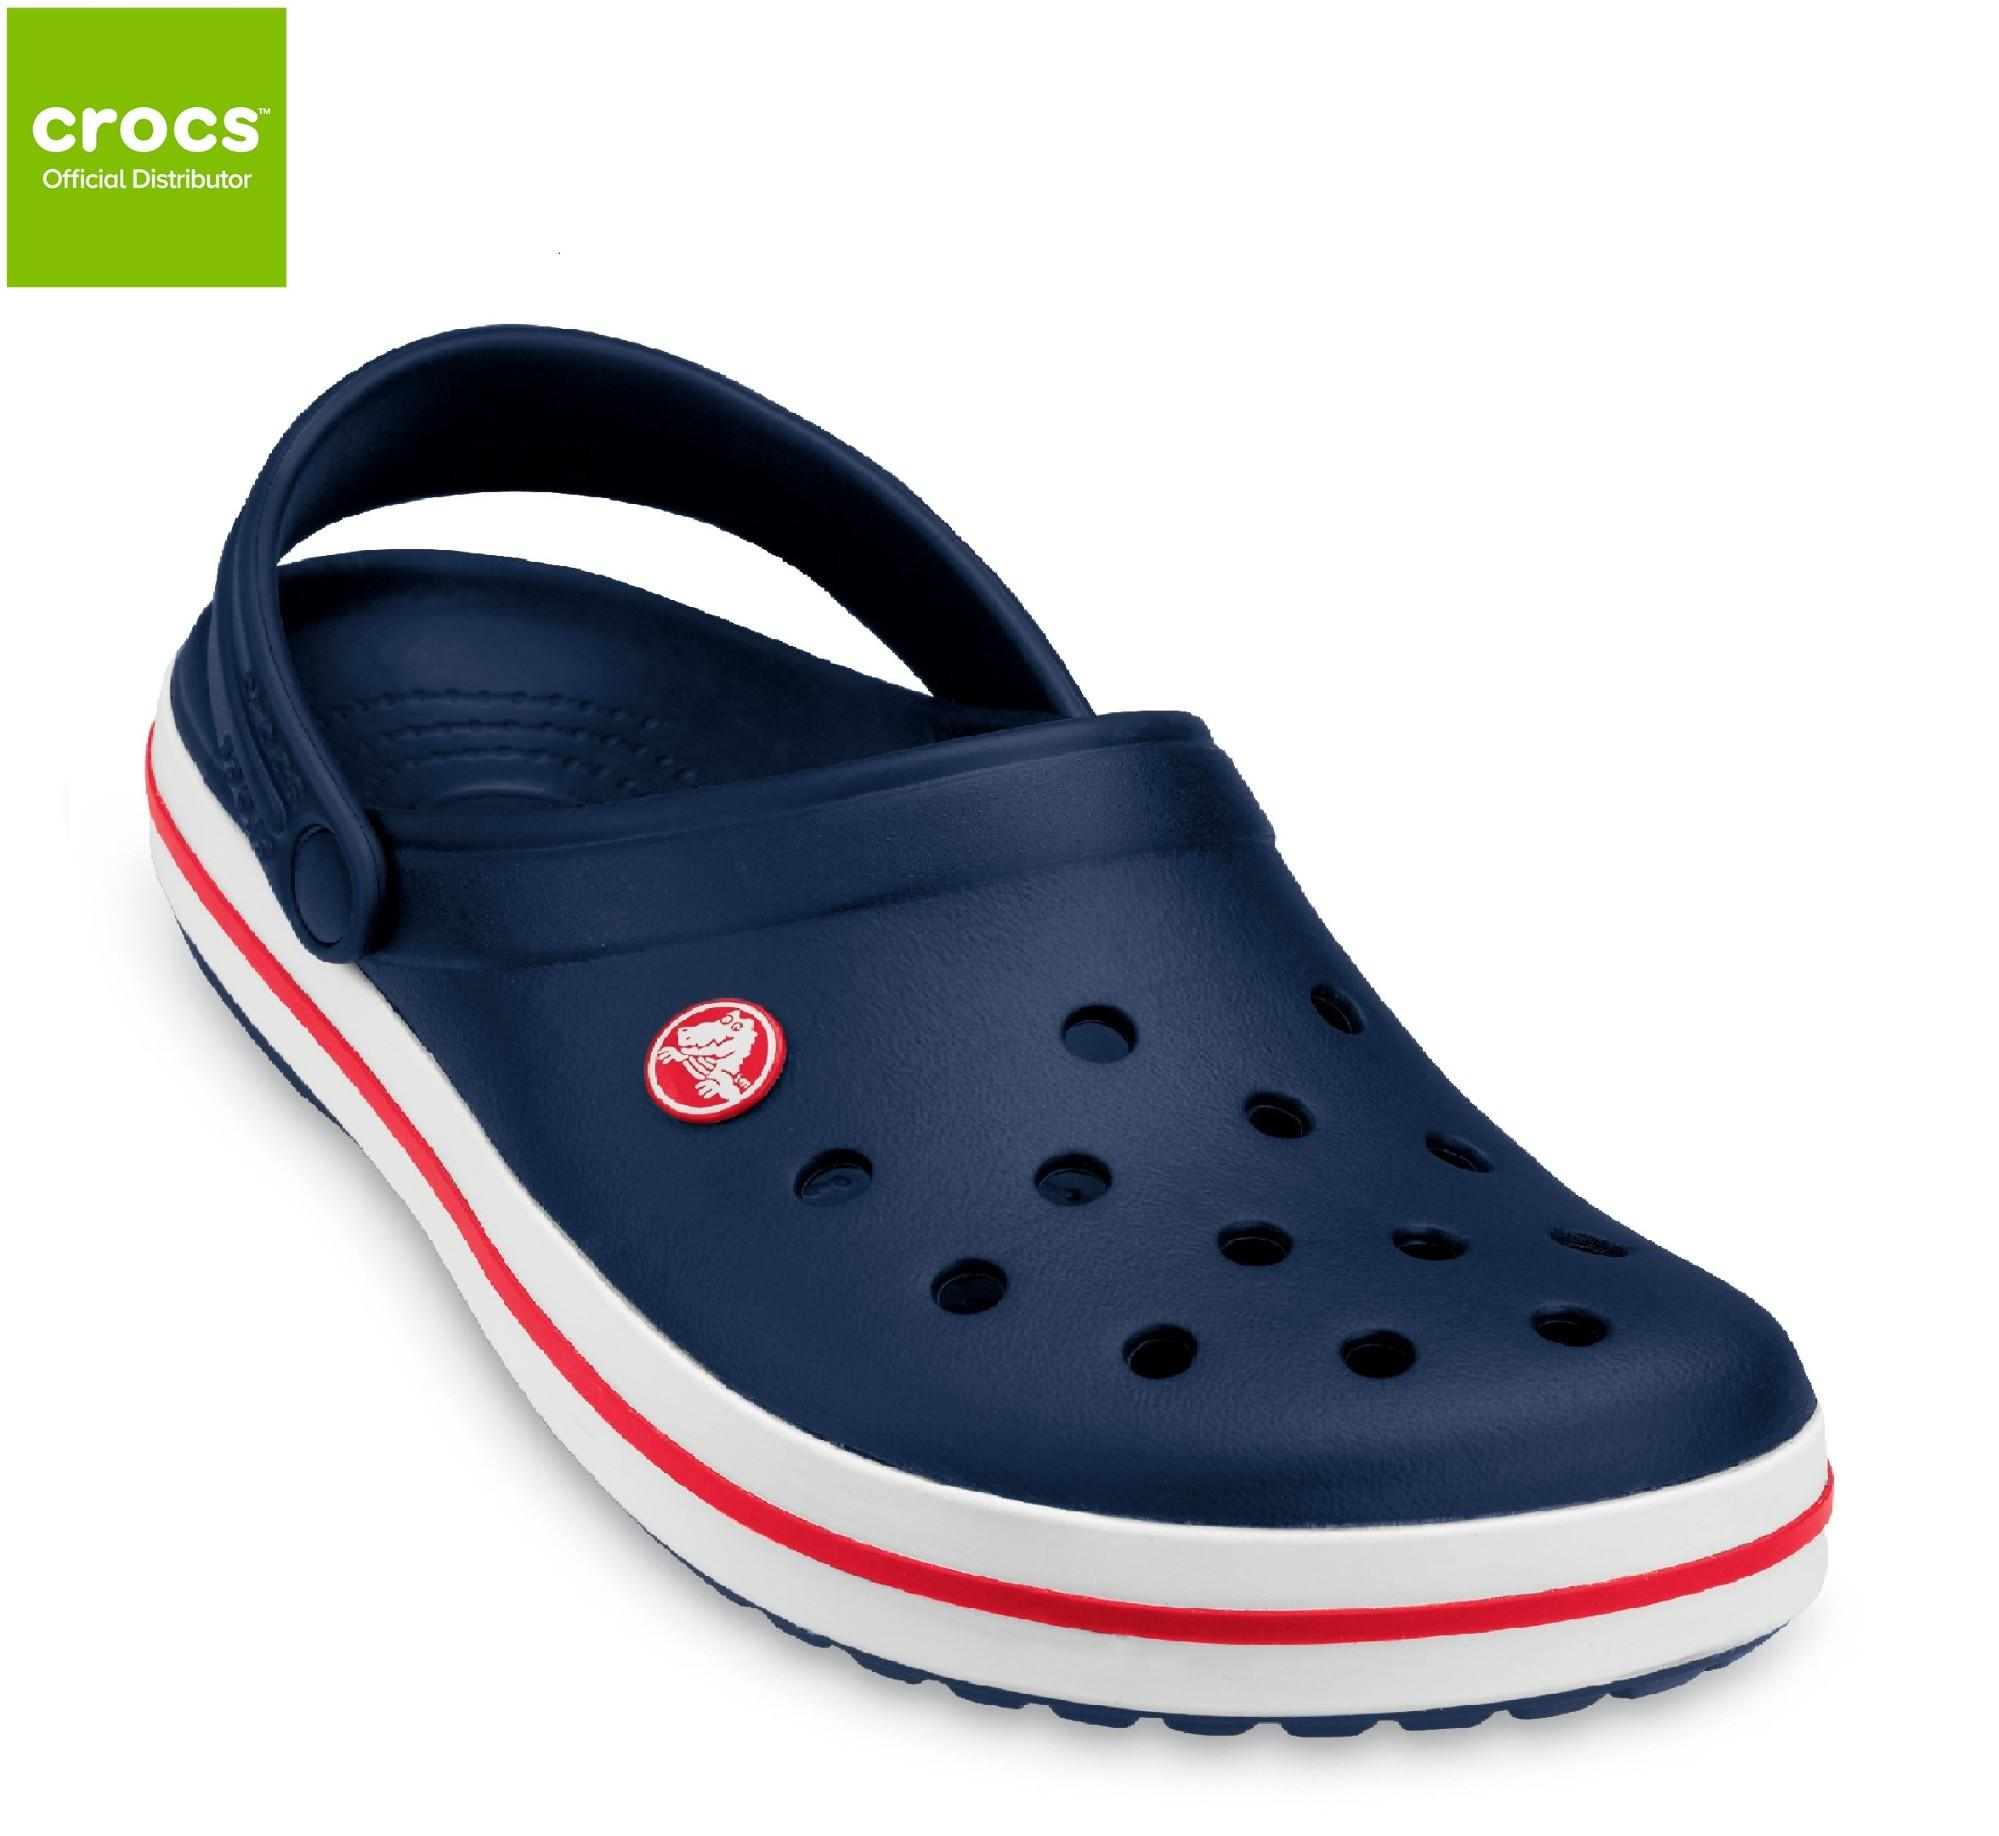 8c5b4278d Crocs Philippines  Crocs price list - Crocs Flats